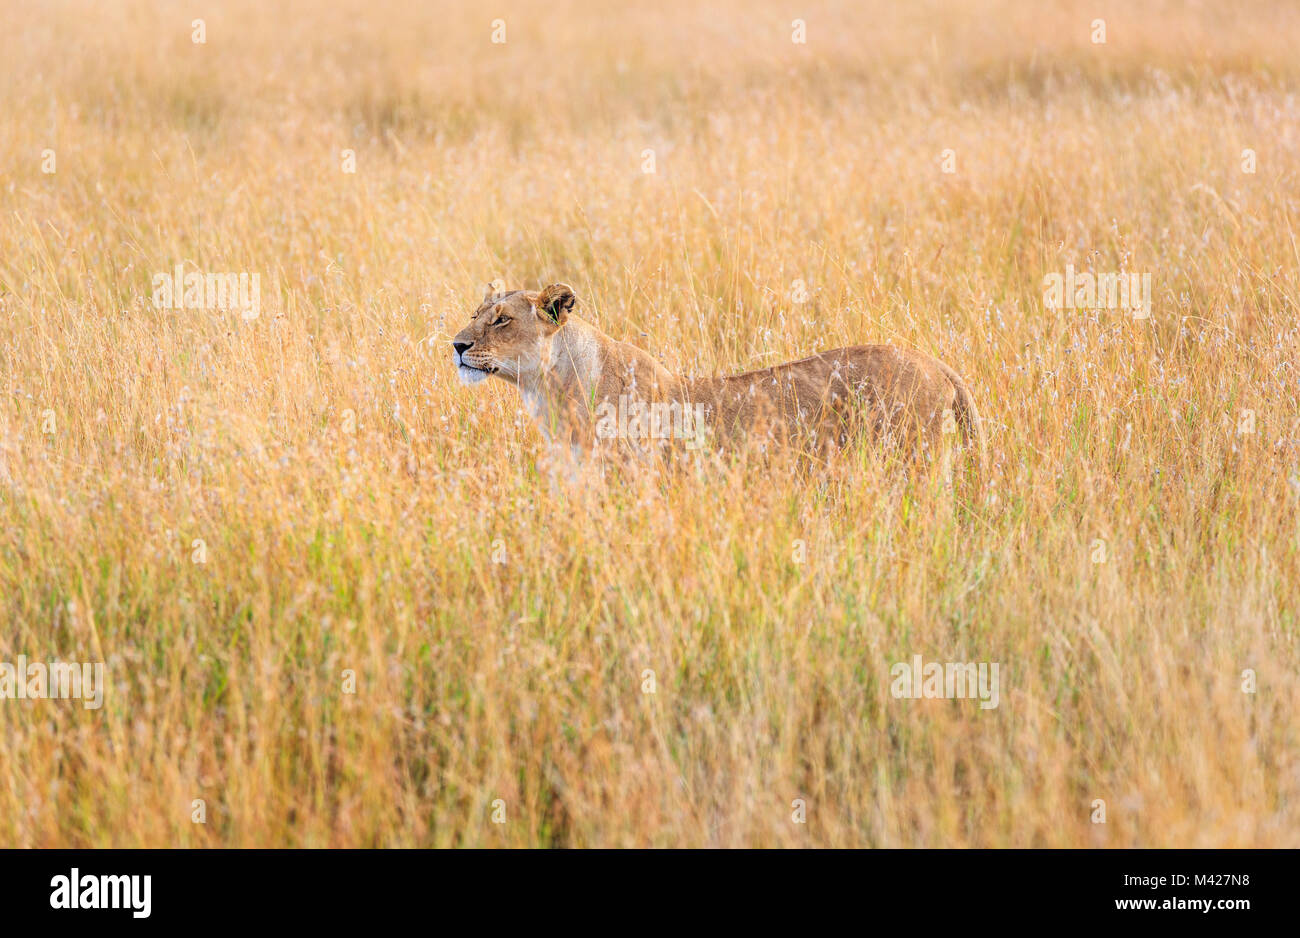 Predator: stealthy watchful lioness (Panthera leo) standing partially concealed in long grass, alert watching for Stock Photo